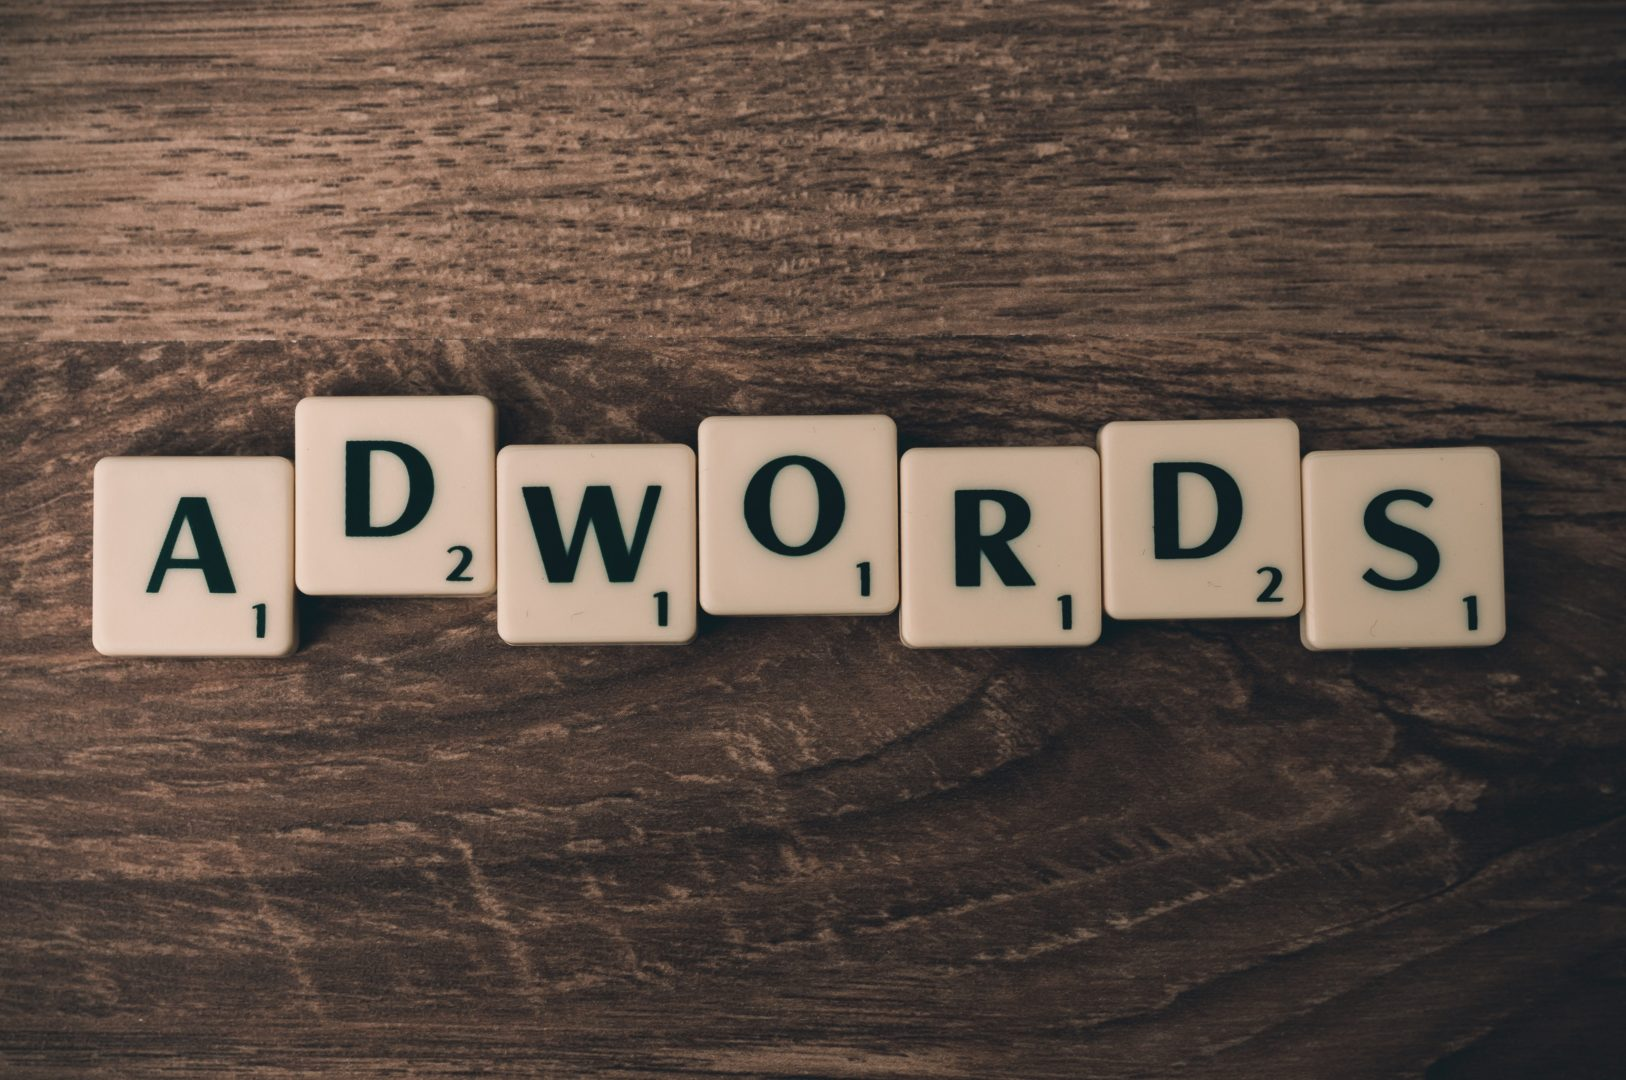 Google adwords campaign spelled out